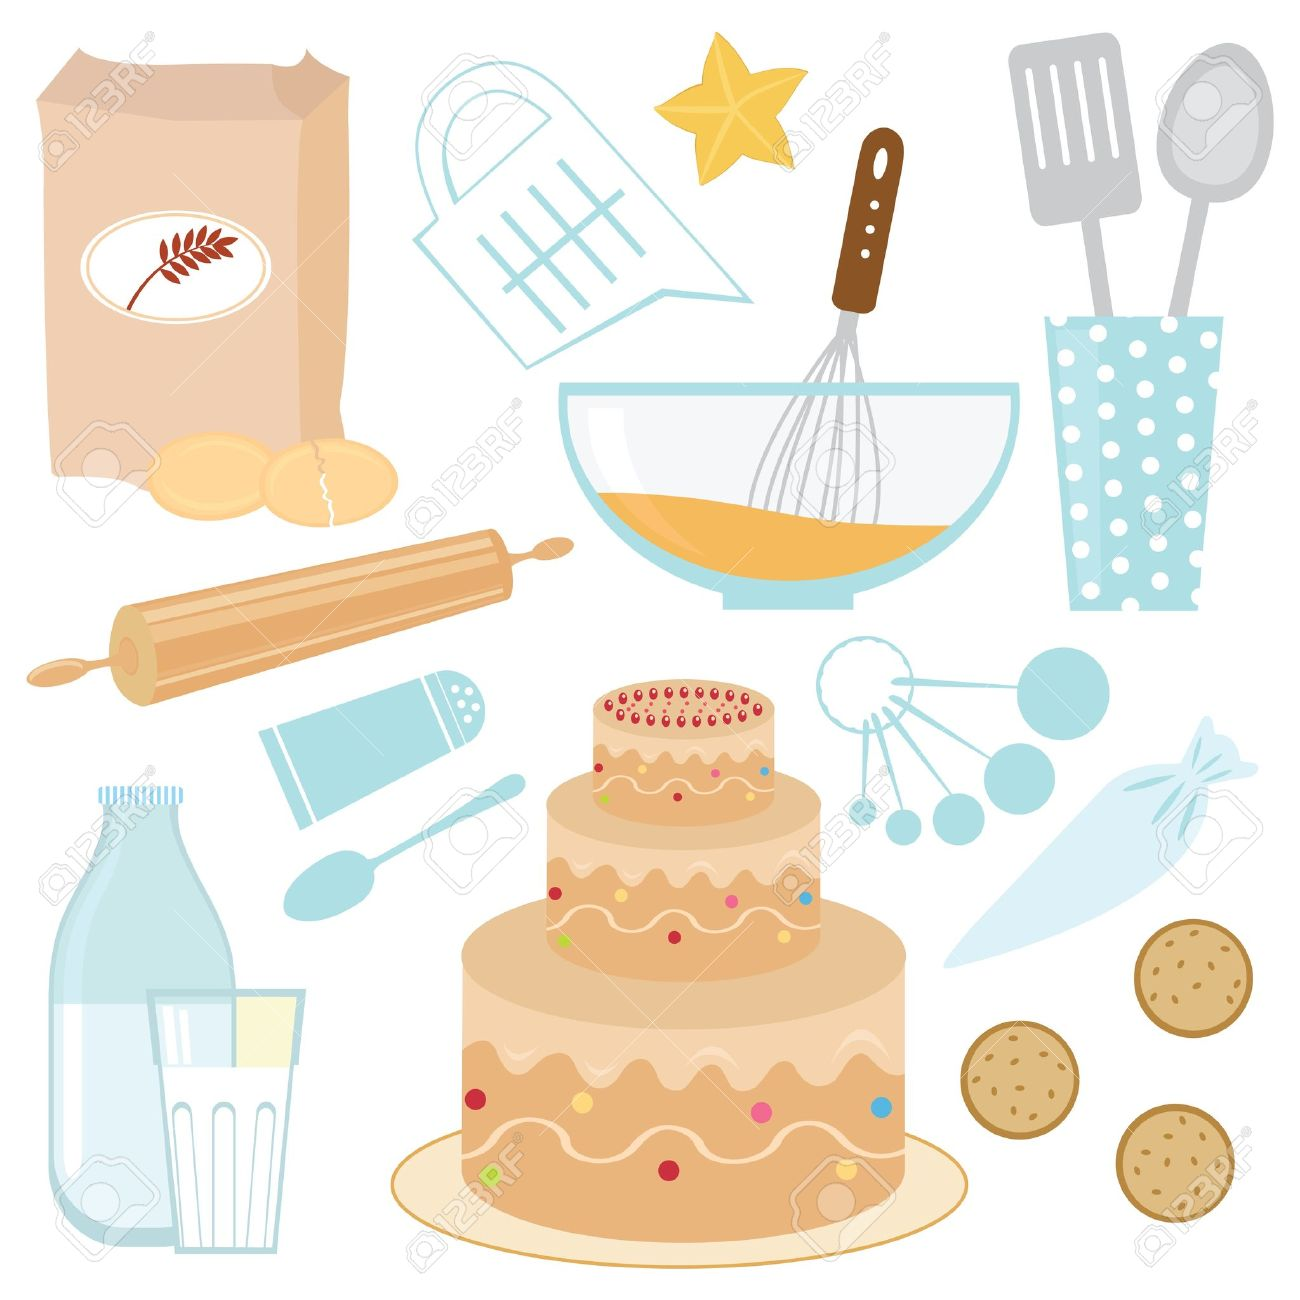 Baking A Cake Clip Art : Bowl cake clipart - Clipground